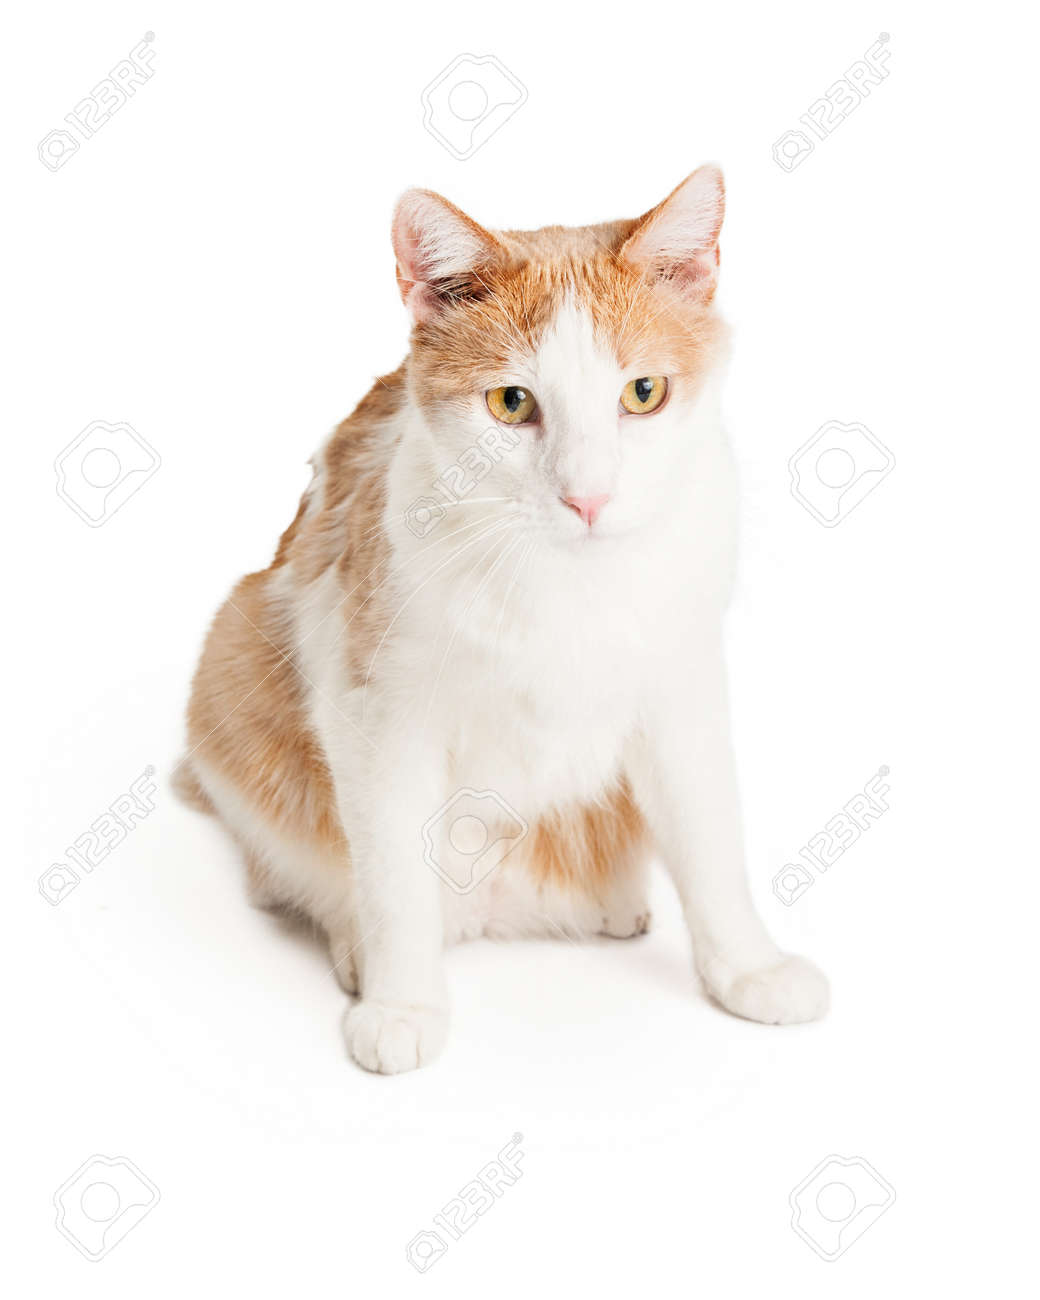 A Beautiful Orange And White Domestic Shorthair Mixed Breed Cat